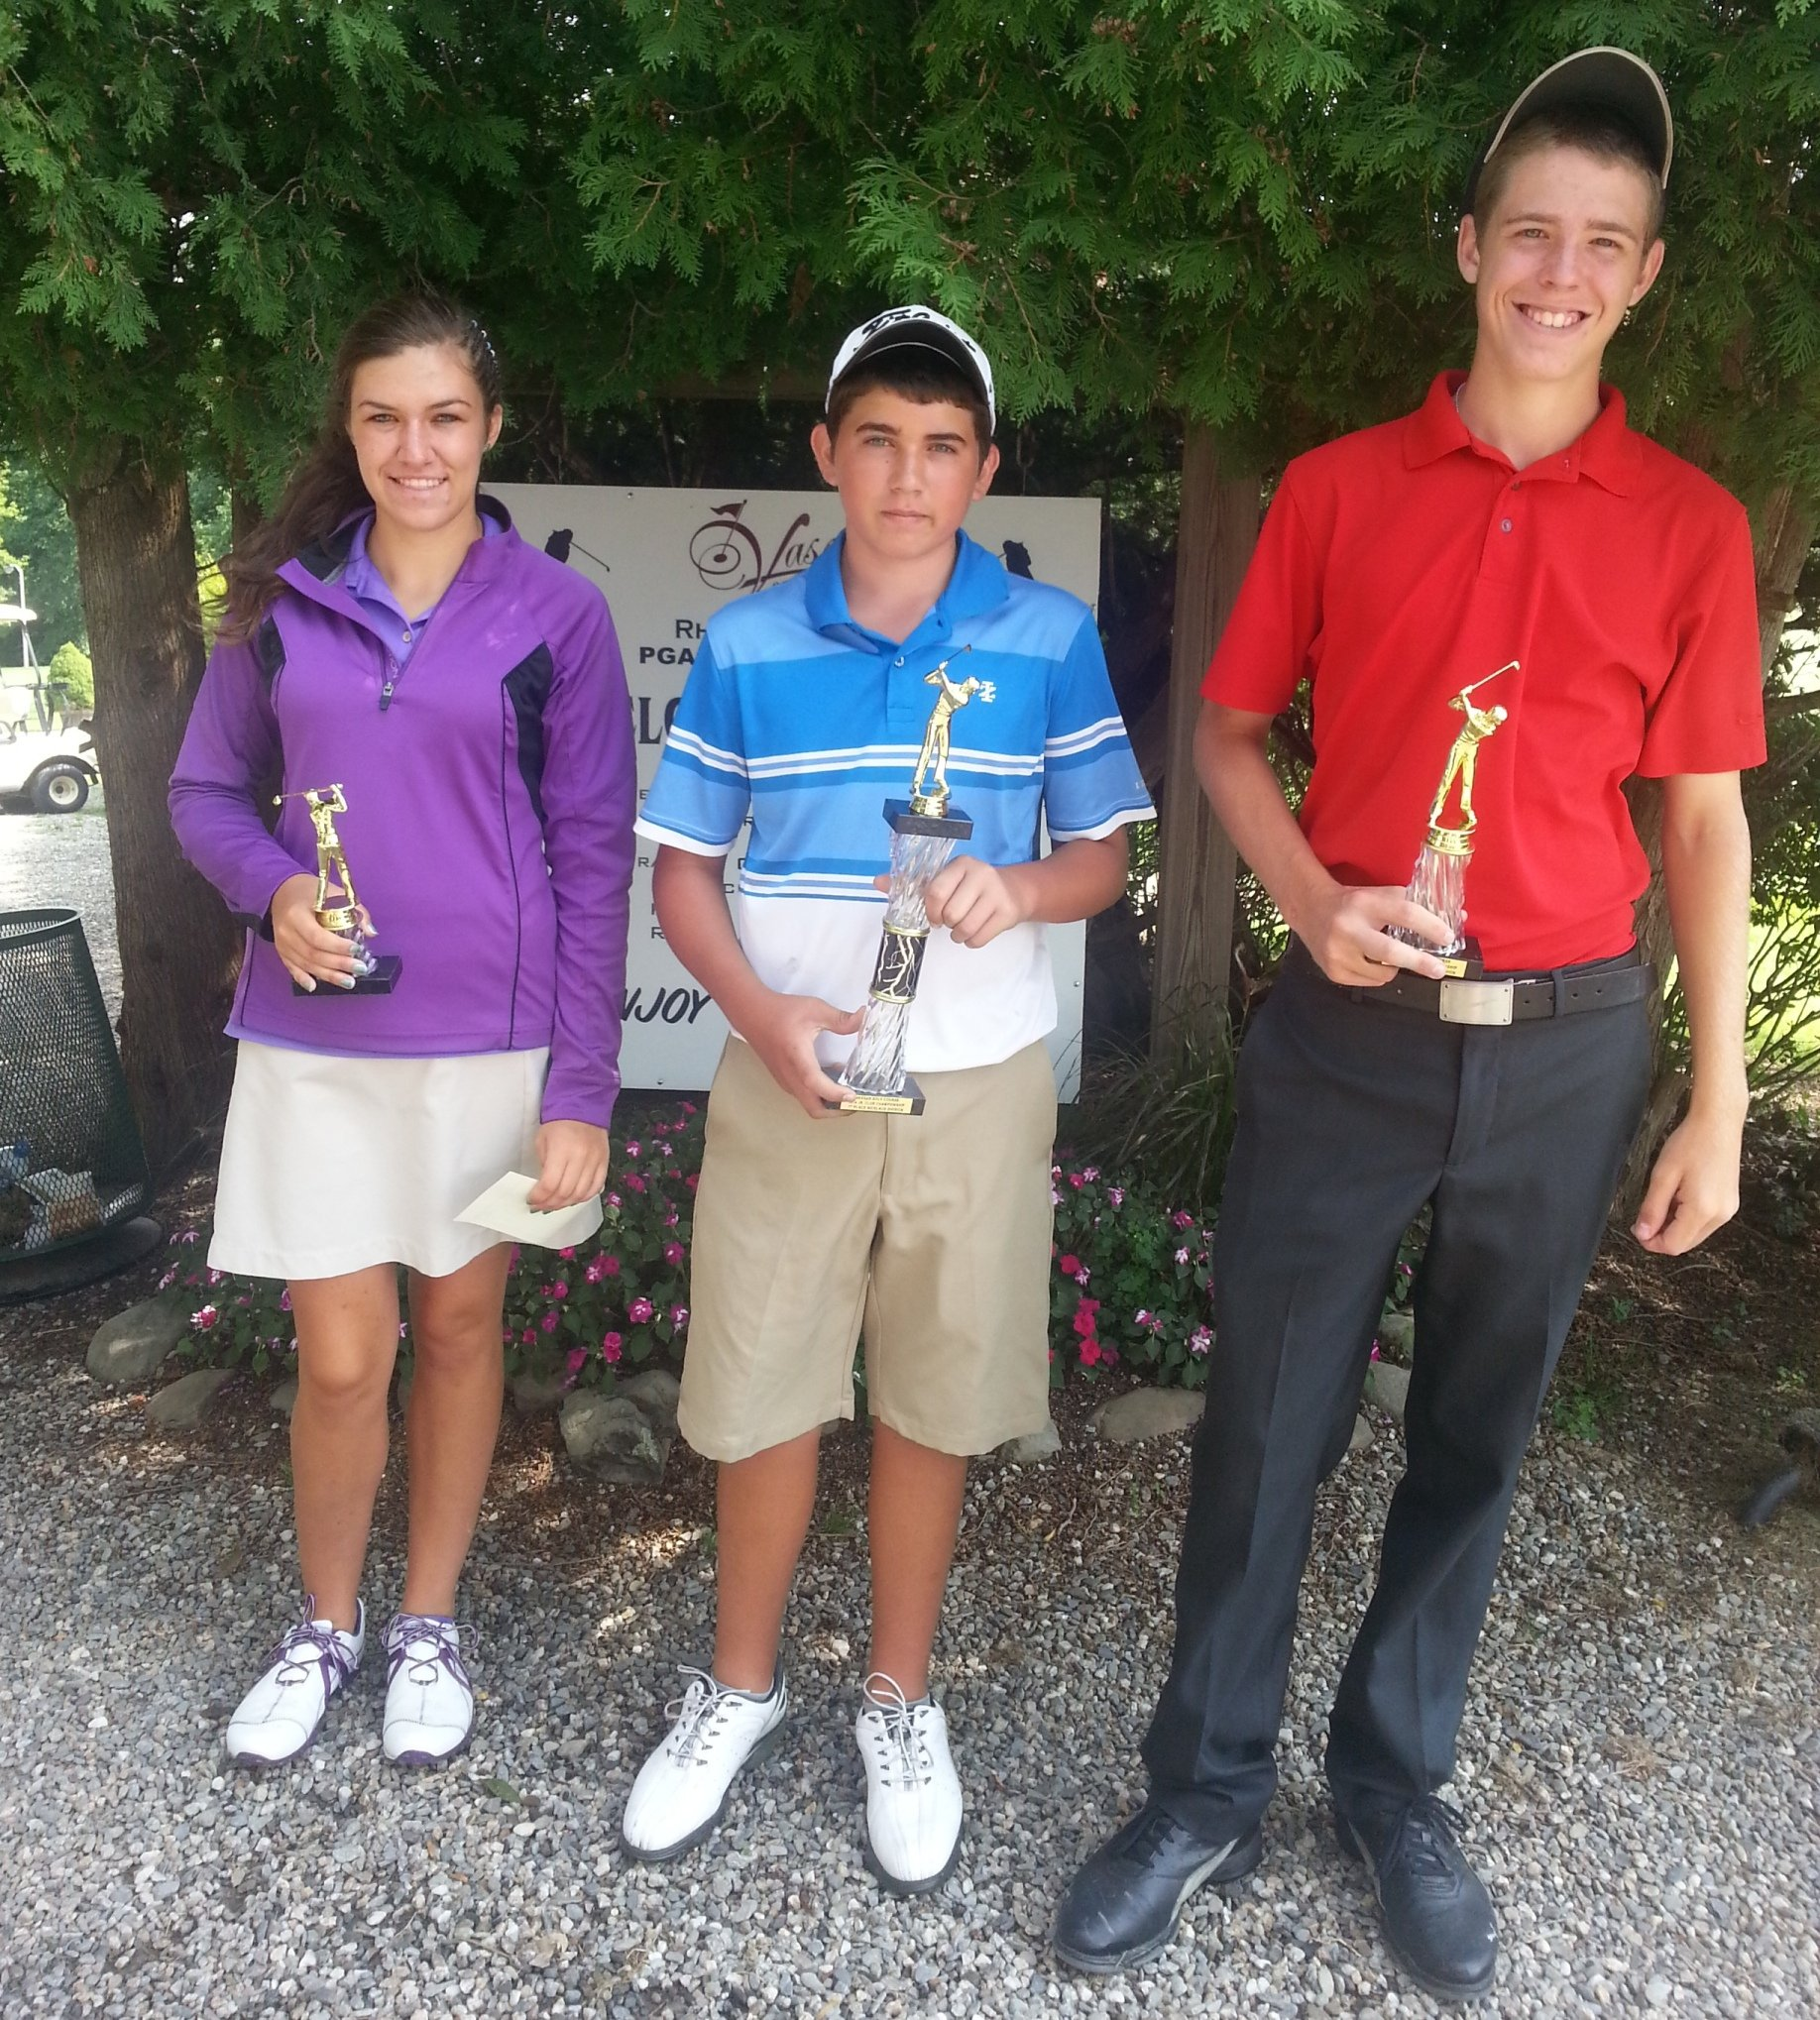 Junior Club Championship 2014 - Nicklaus Division